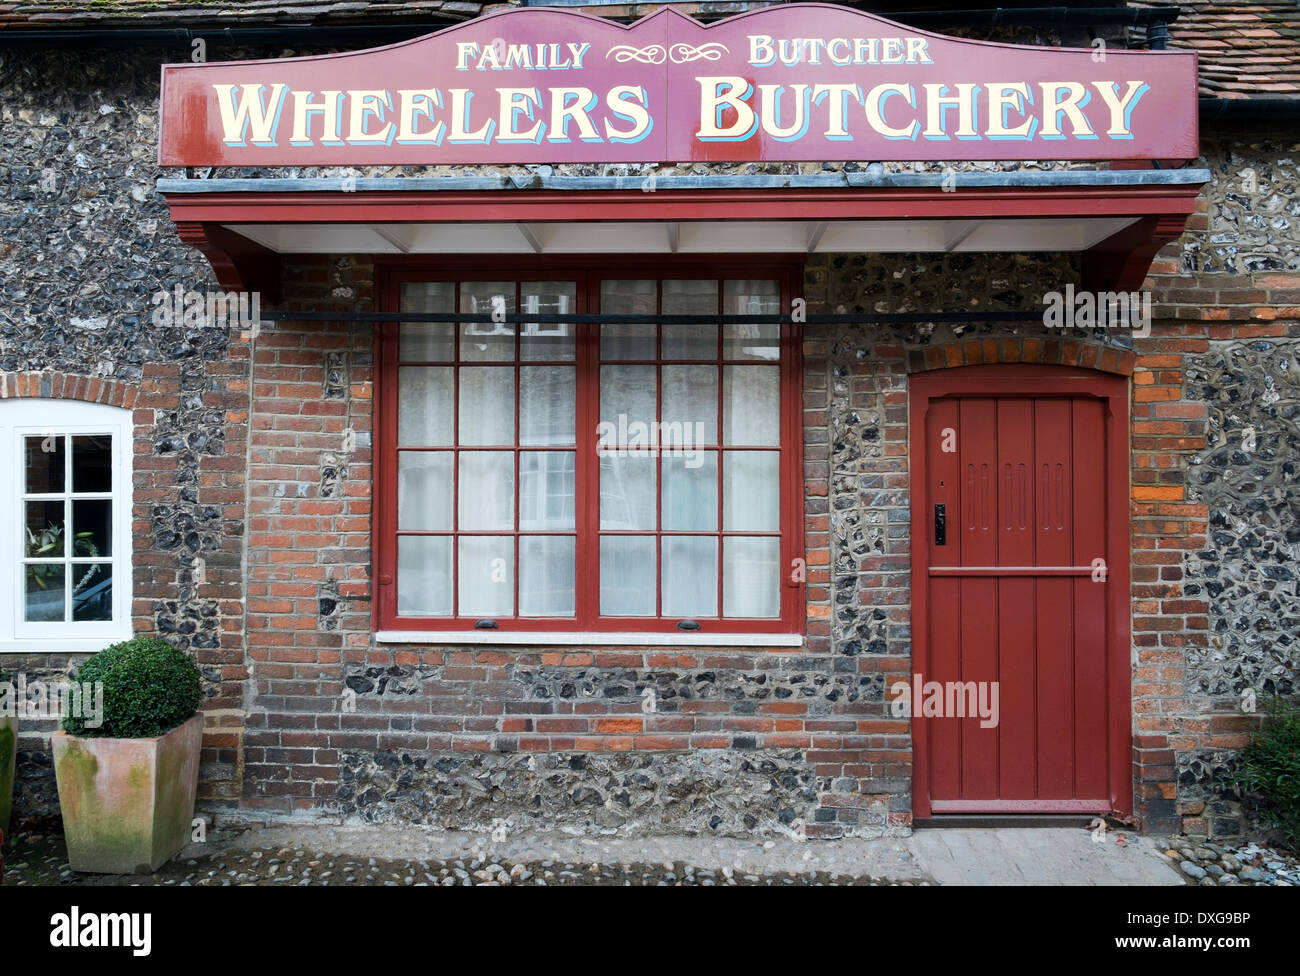 Wheelers butchery Hambleden village Buckinghamshire UK - Stock Image